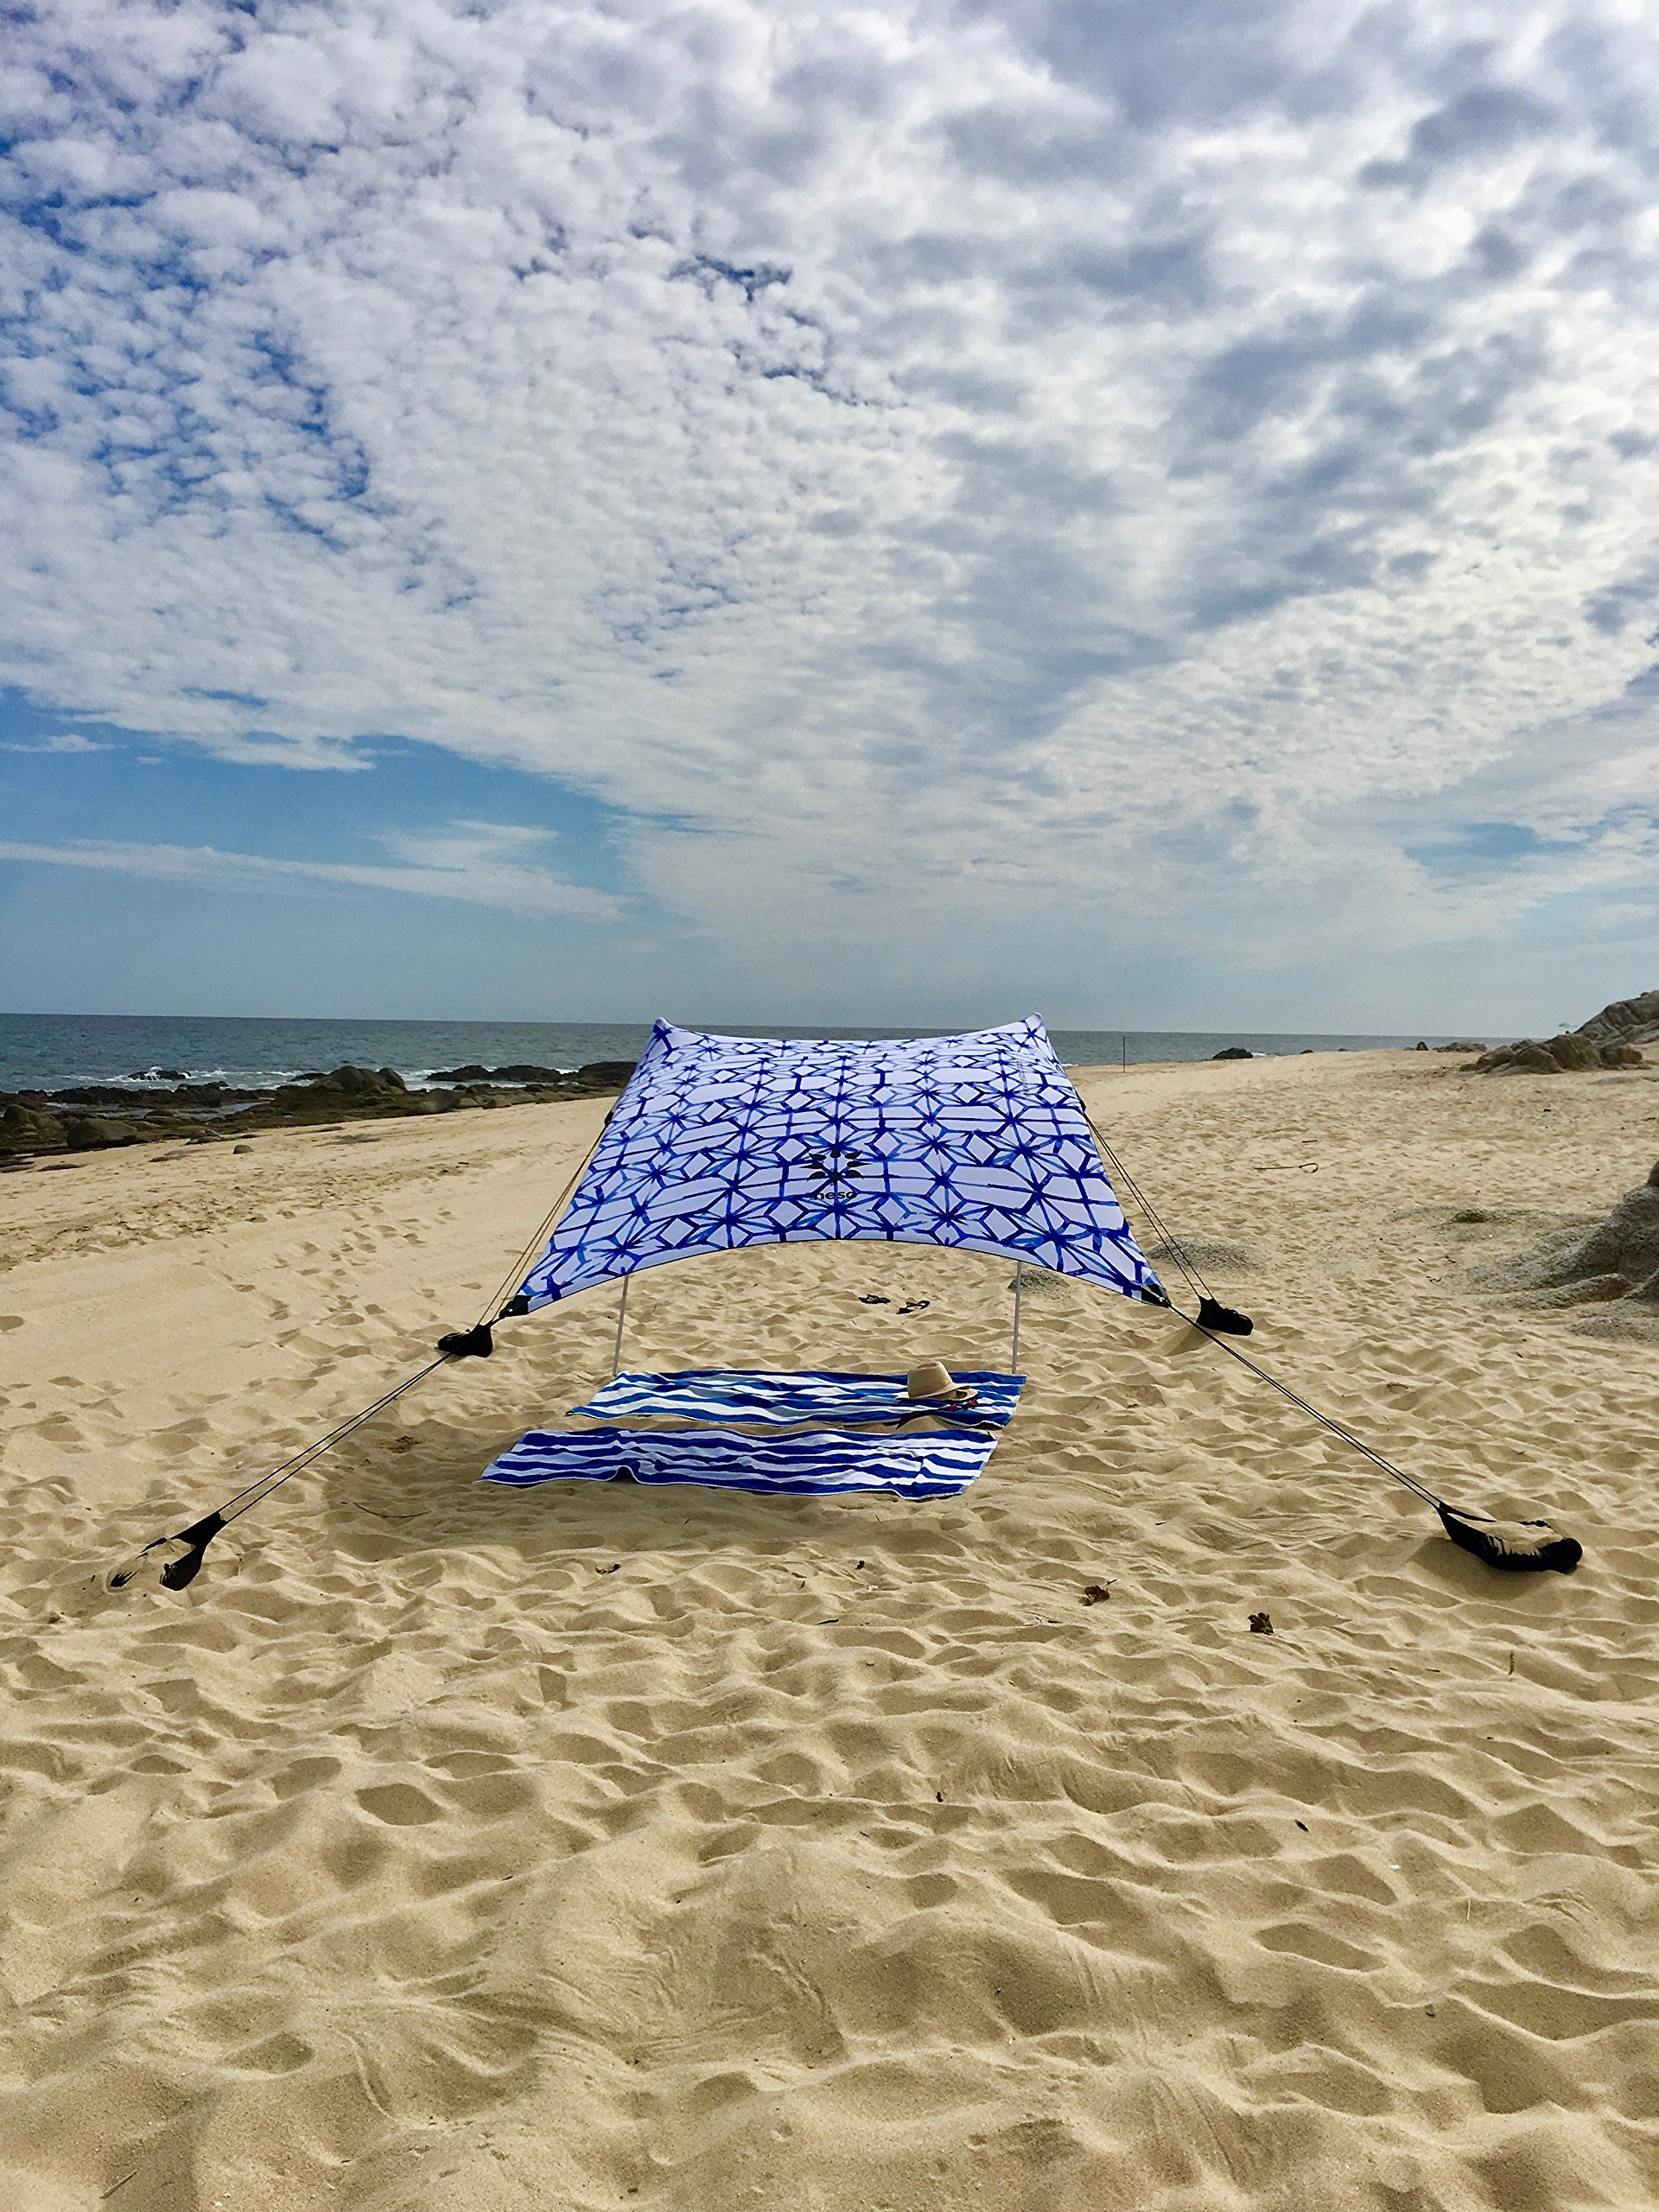 Neso Tents Beach Tent with Sand Anchor, Portable Canopy Sunshade - 7' x 7' - Patented Reinforced Corners(Shibori) by Neso